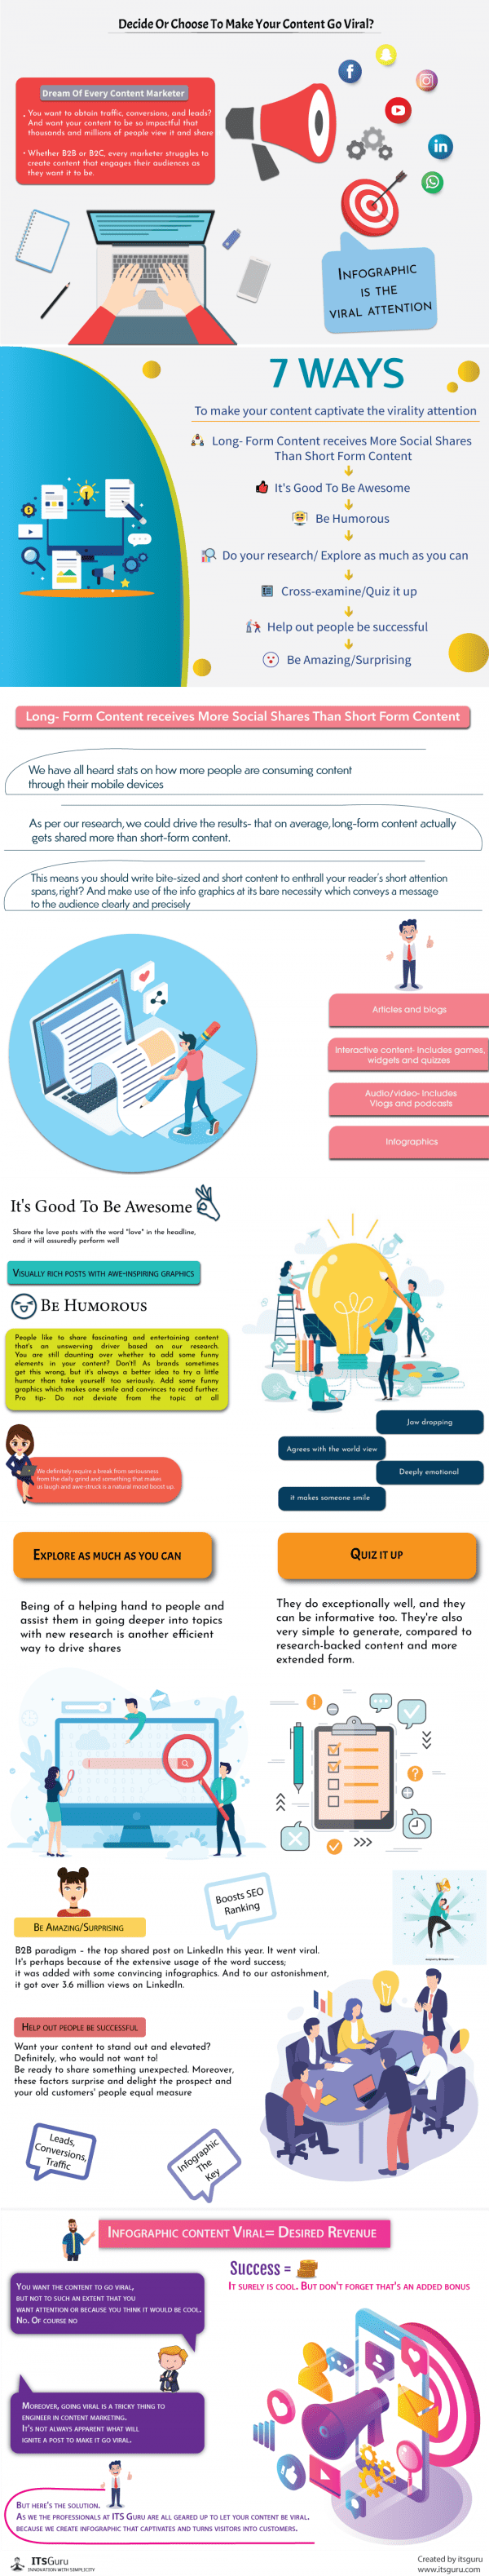 Content Go Viral - Infographic